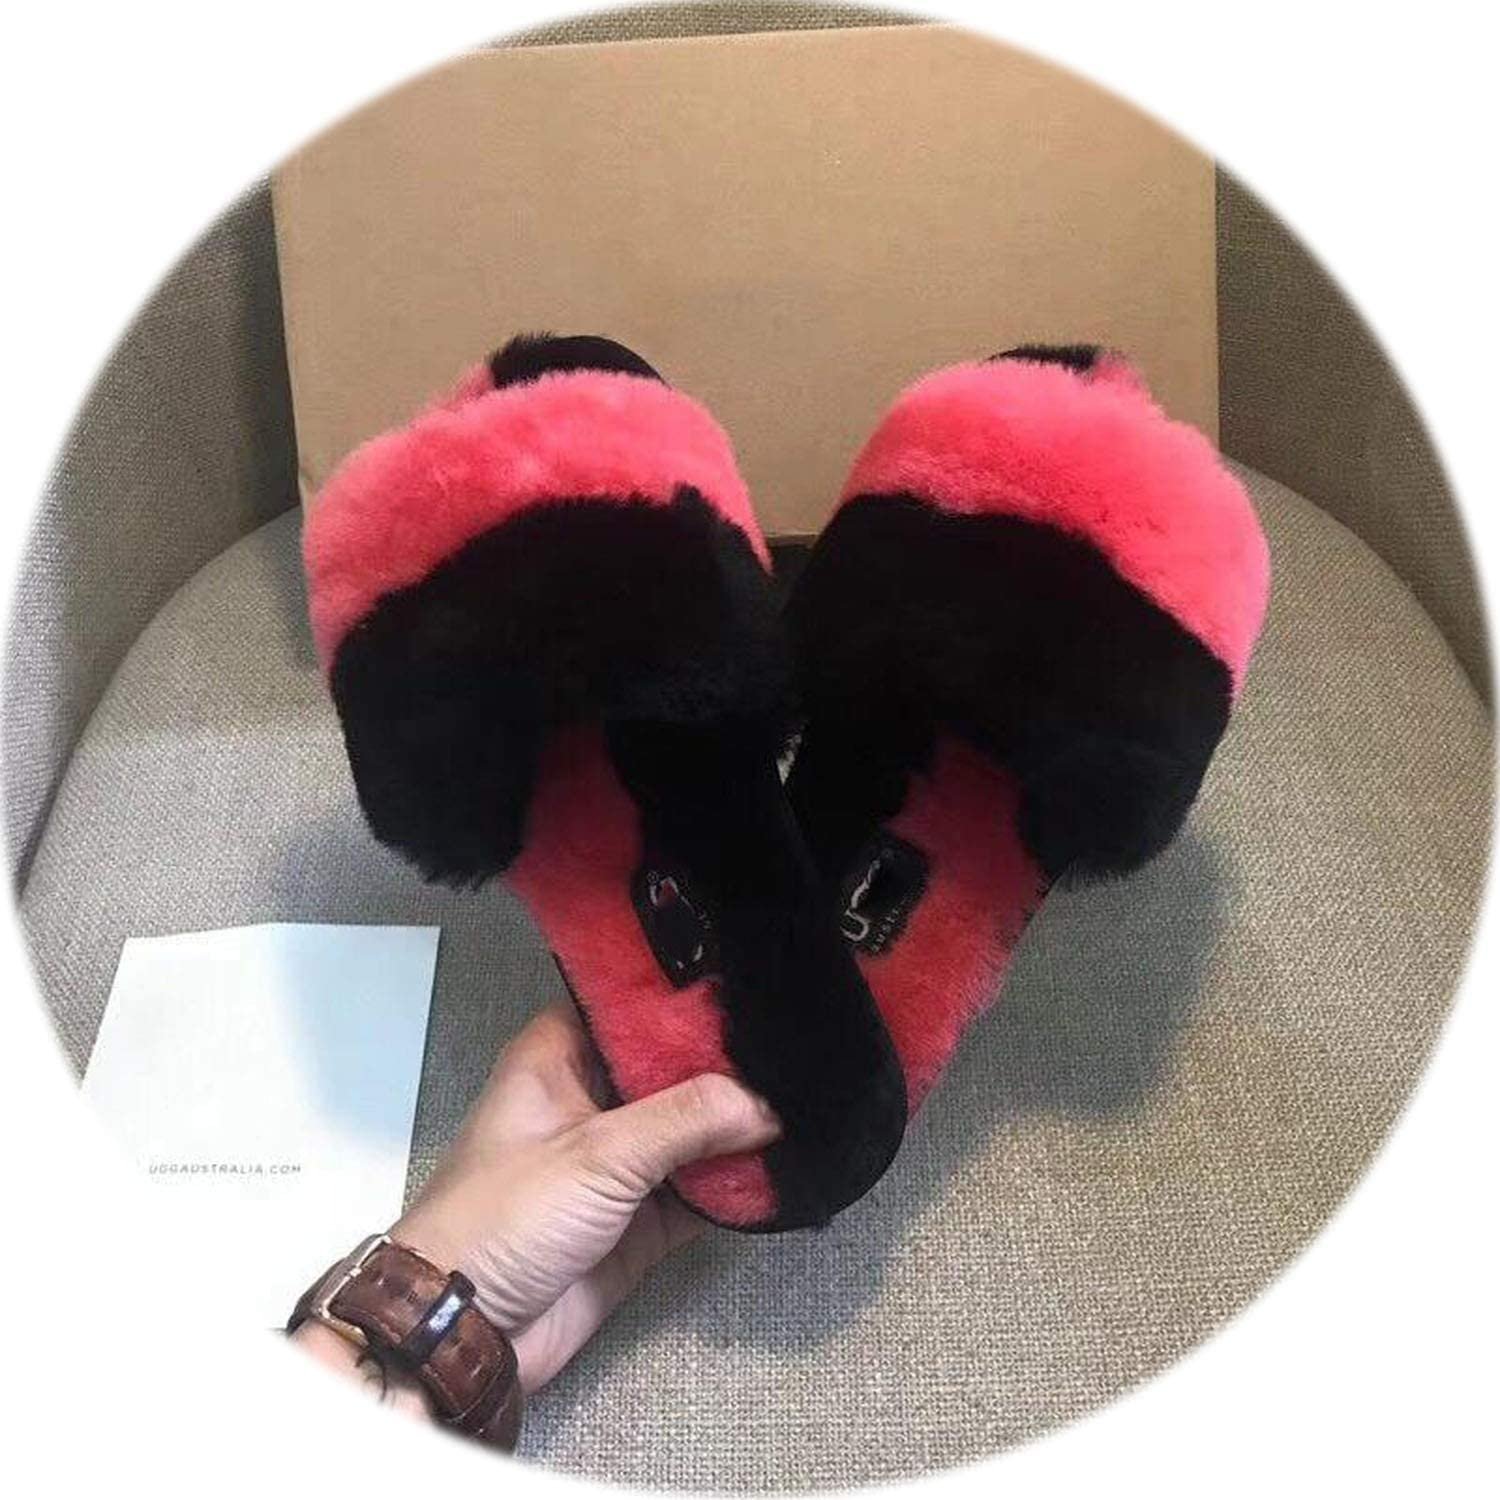 Sexy Spell color Fur Slippers 2018 Top Warm Wool House Slippers Winter Comfortable Women Flats Indoor Slippers Casual House shoes,Red,8.5